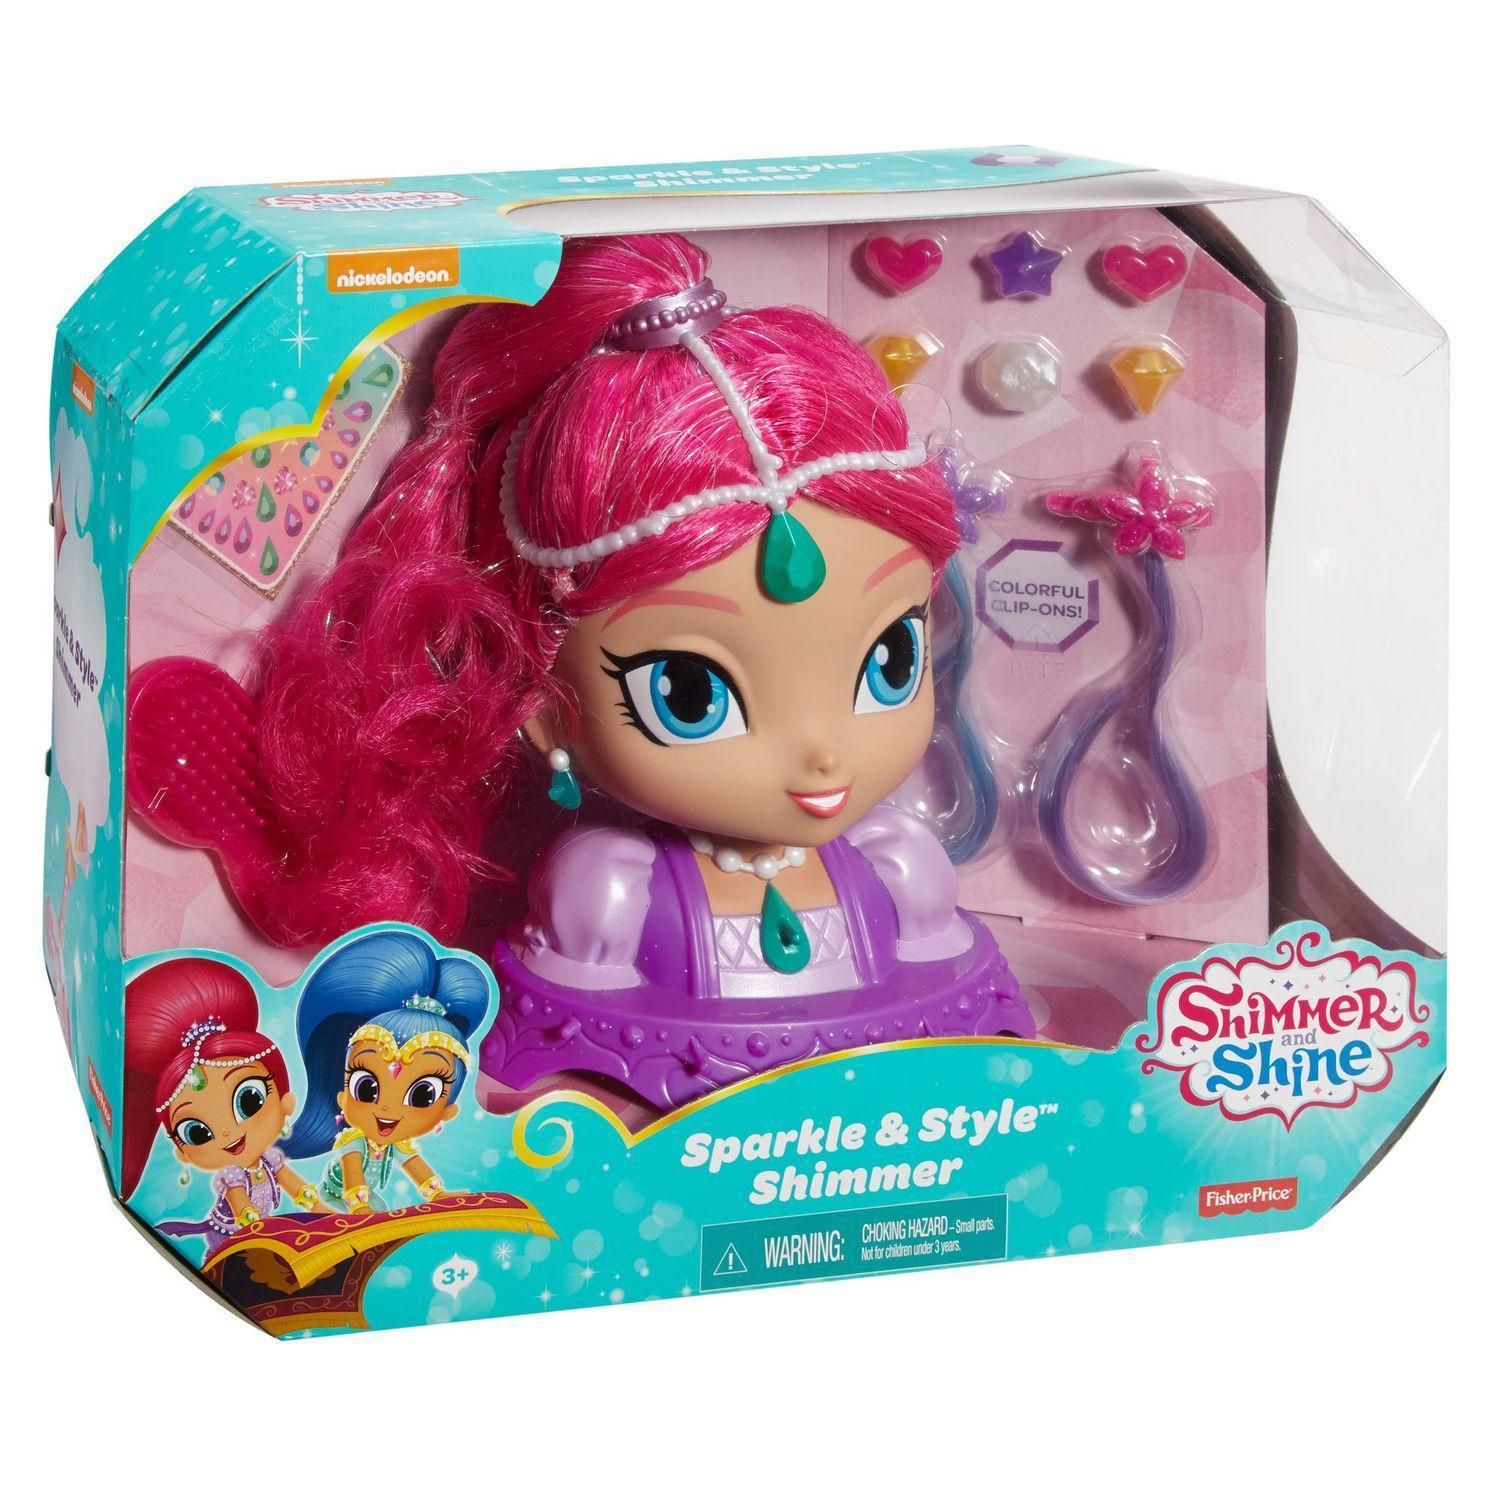 Shimmer And Shine Sparkle Amp Style Shimmer Playset